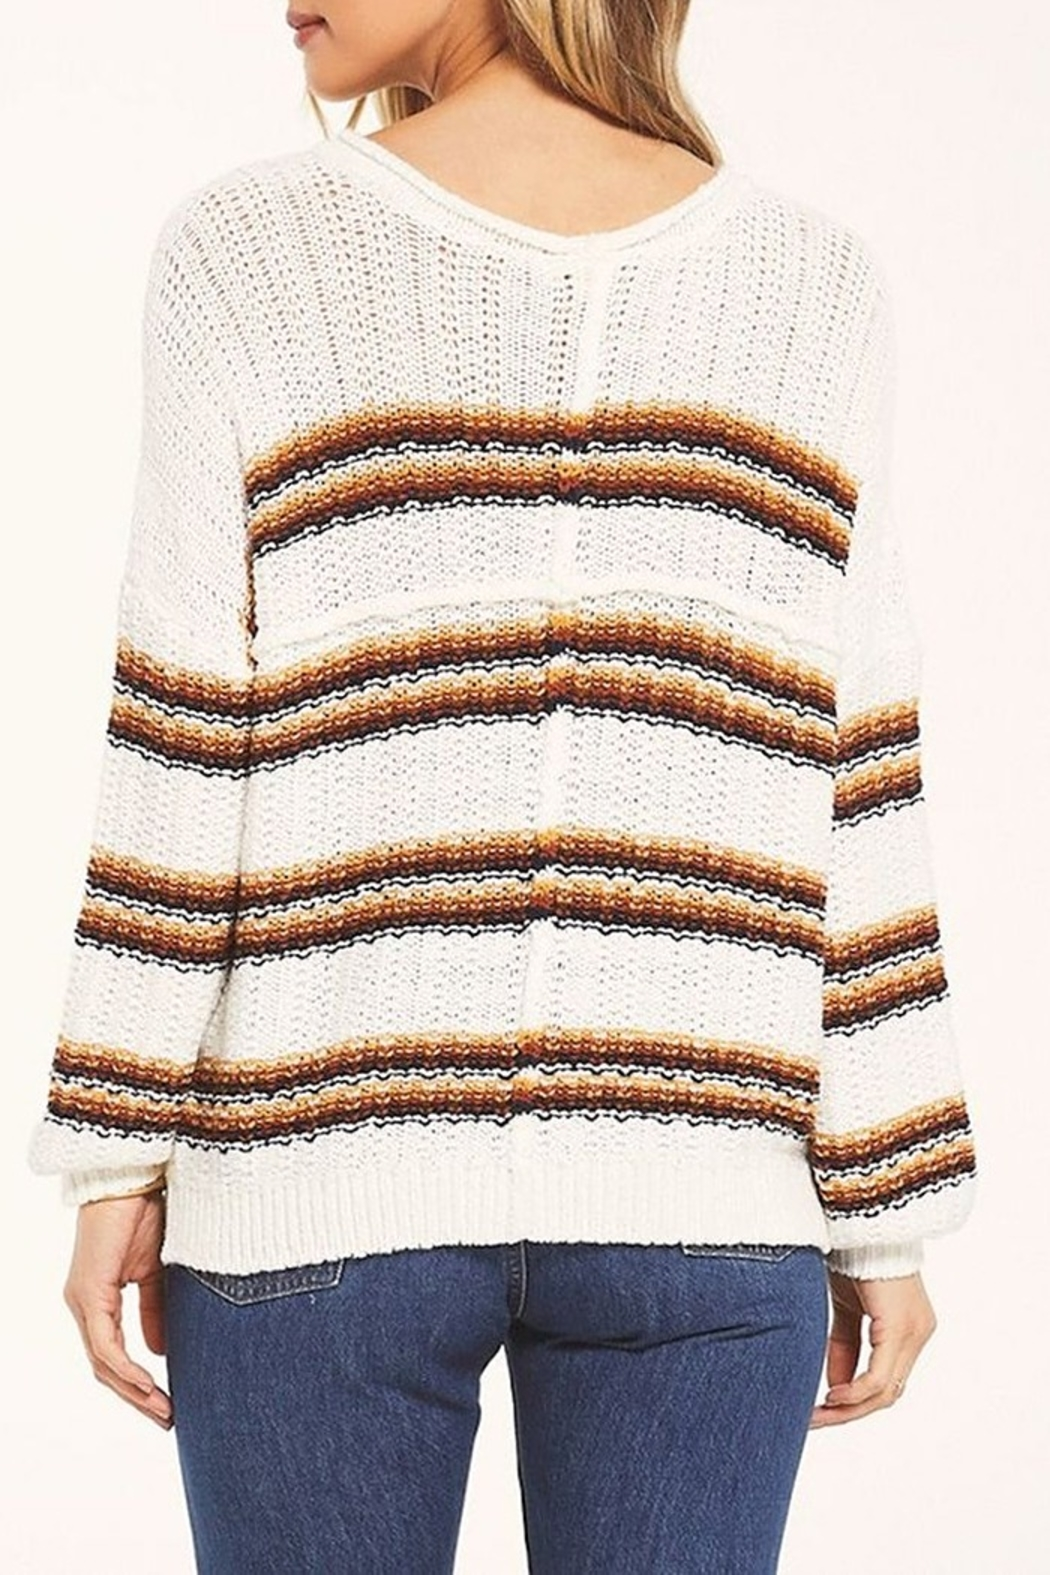 White Crow  Capitan Roll-Knit Sweater - Front Full Image